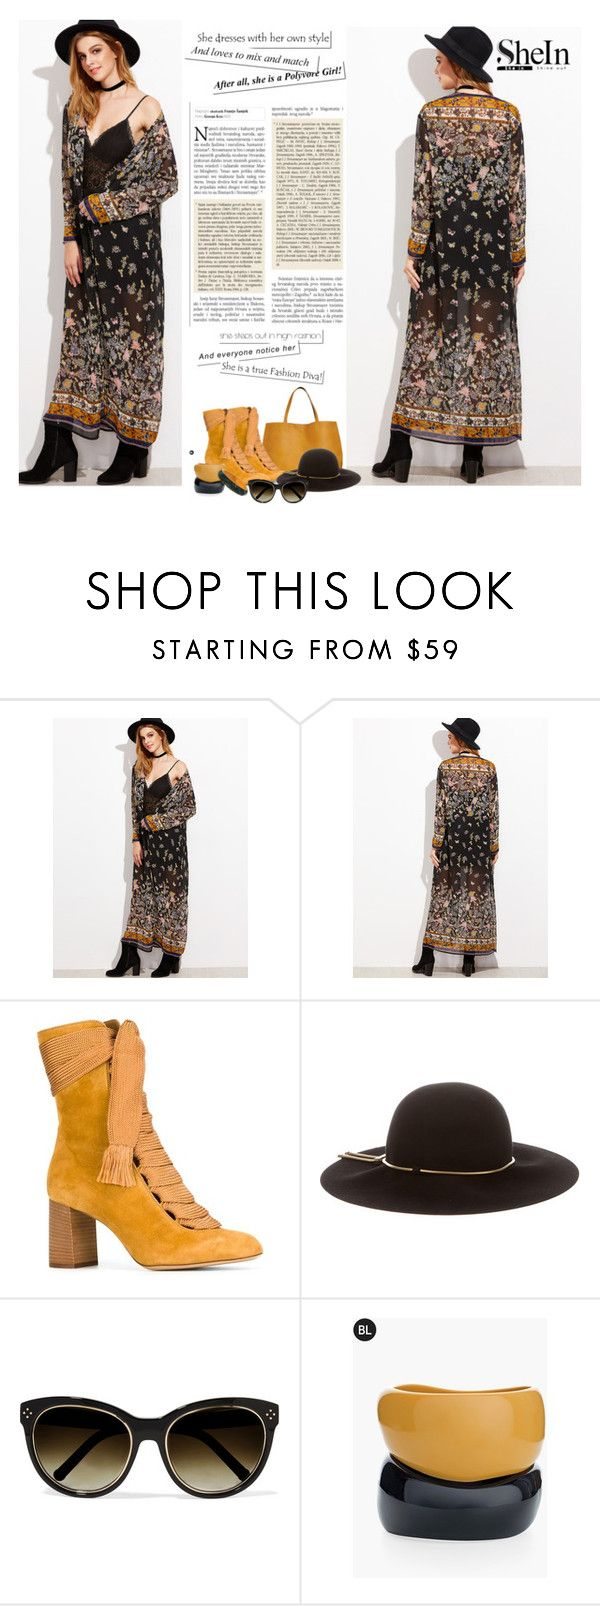 """""""shein.com/Black-Botanical-Print-Maxi-Kimono"""" by lorrainekeenan ❤ liked on Polyvore featuring Chloé, Lanvin and Chico's"""